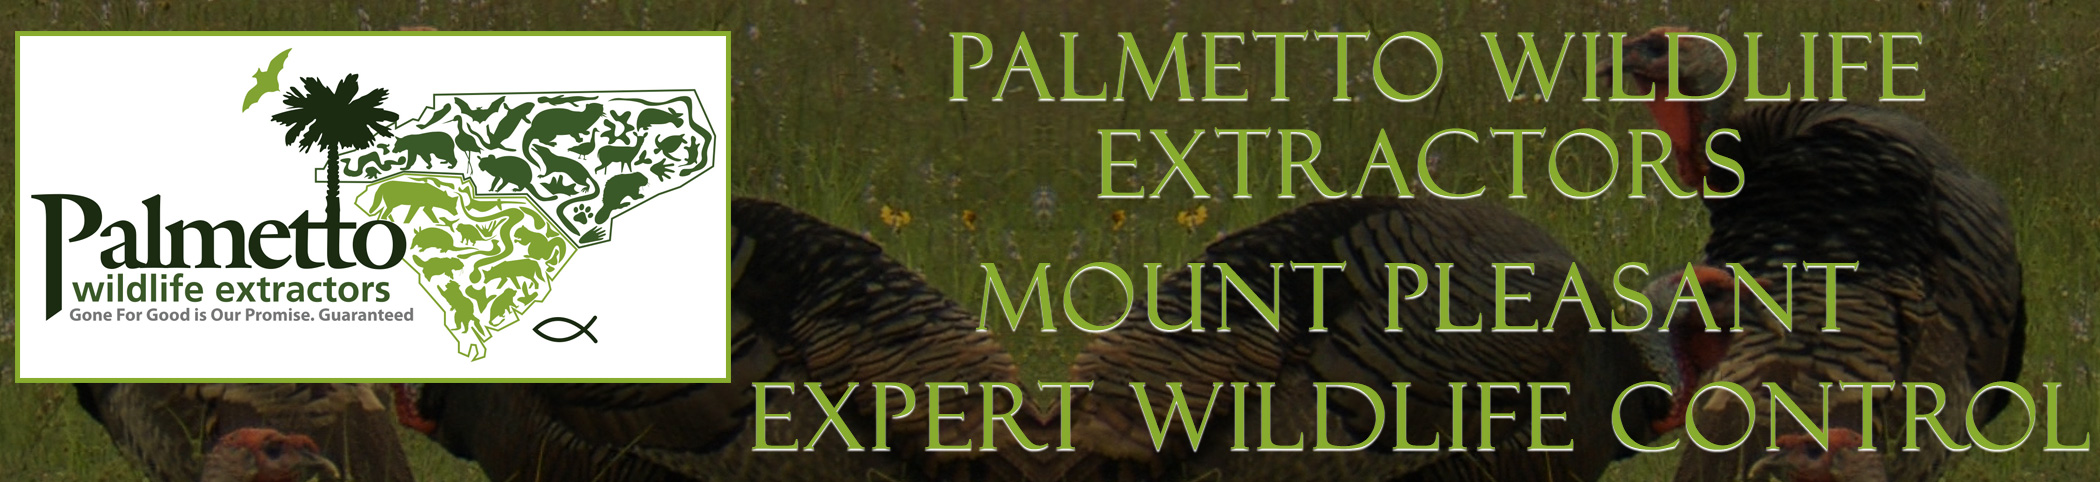 Palmetto Wildlife Extractors Mount Pleasant South Carolina header image